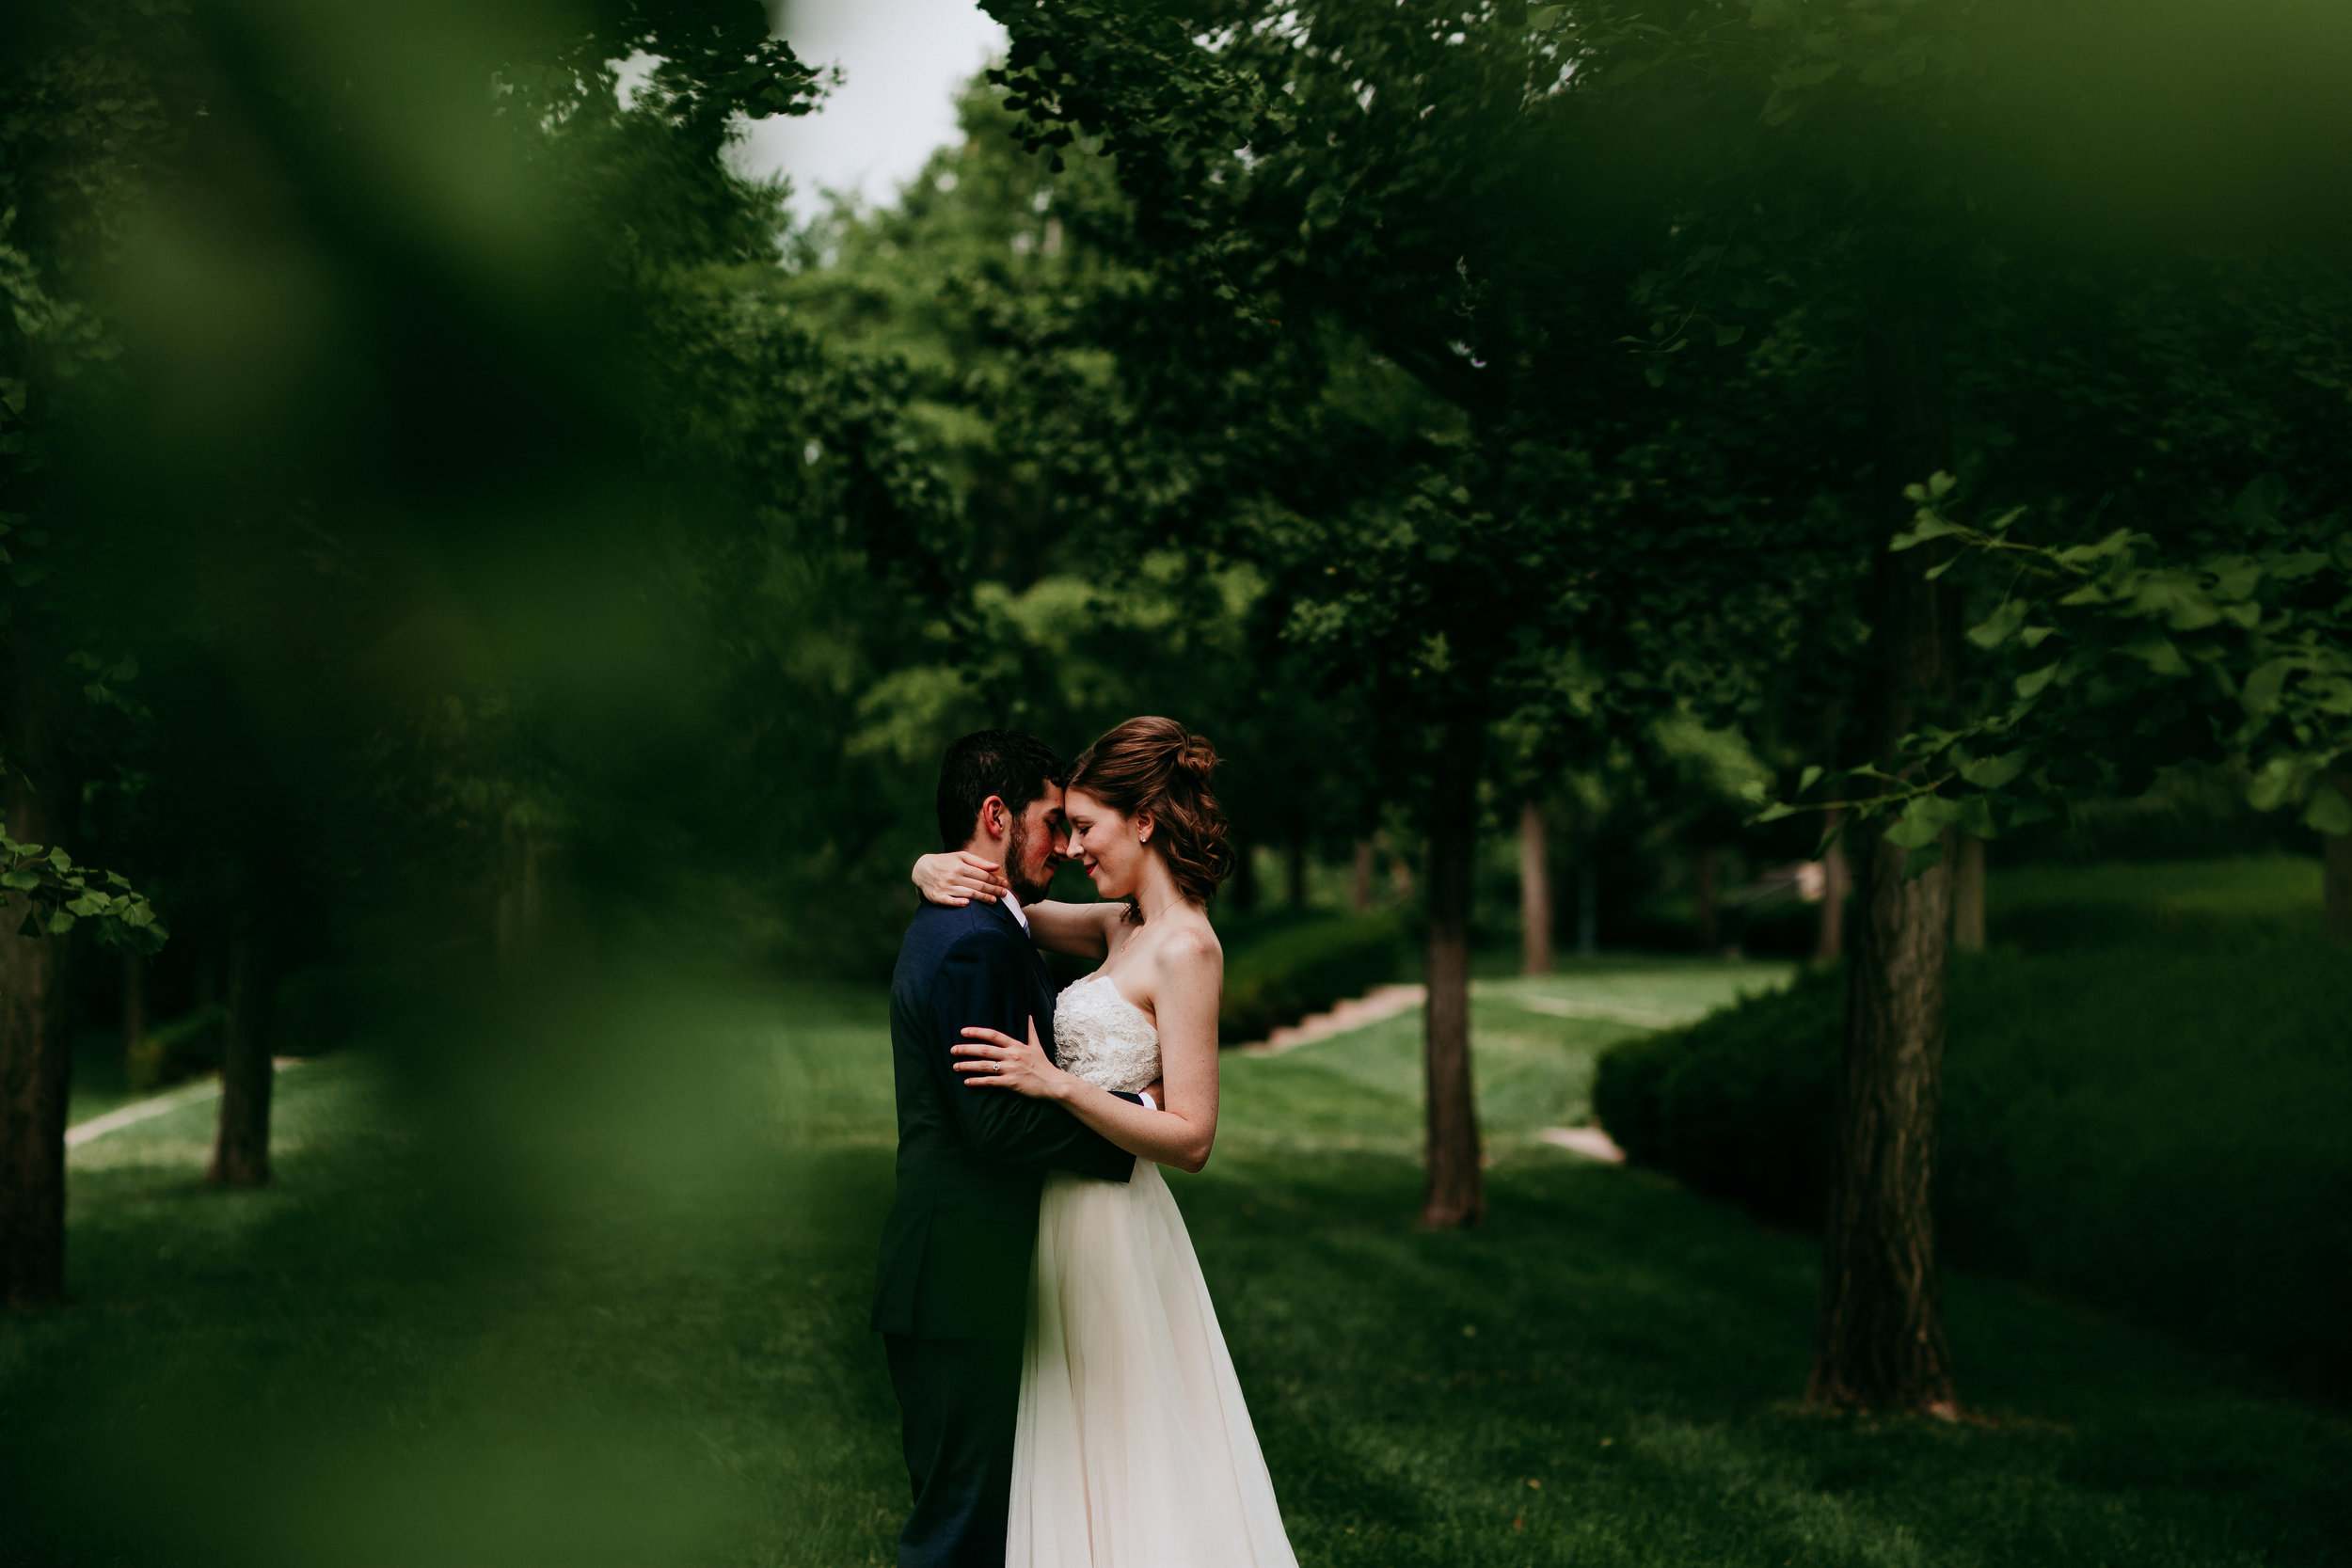 Bride and groom portraits at Nelson Atkins Museum mid town KC | Shelbie & Jospeh's Summer Love Story : Kansas City Wedding | Hanna Hill Photography